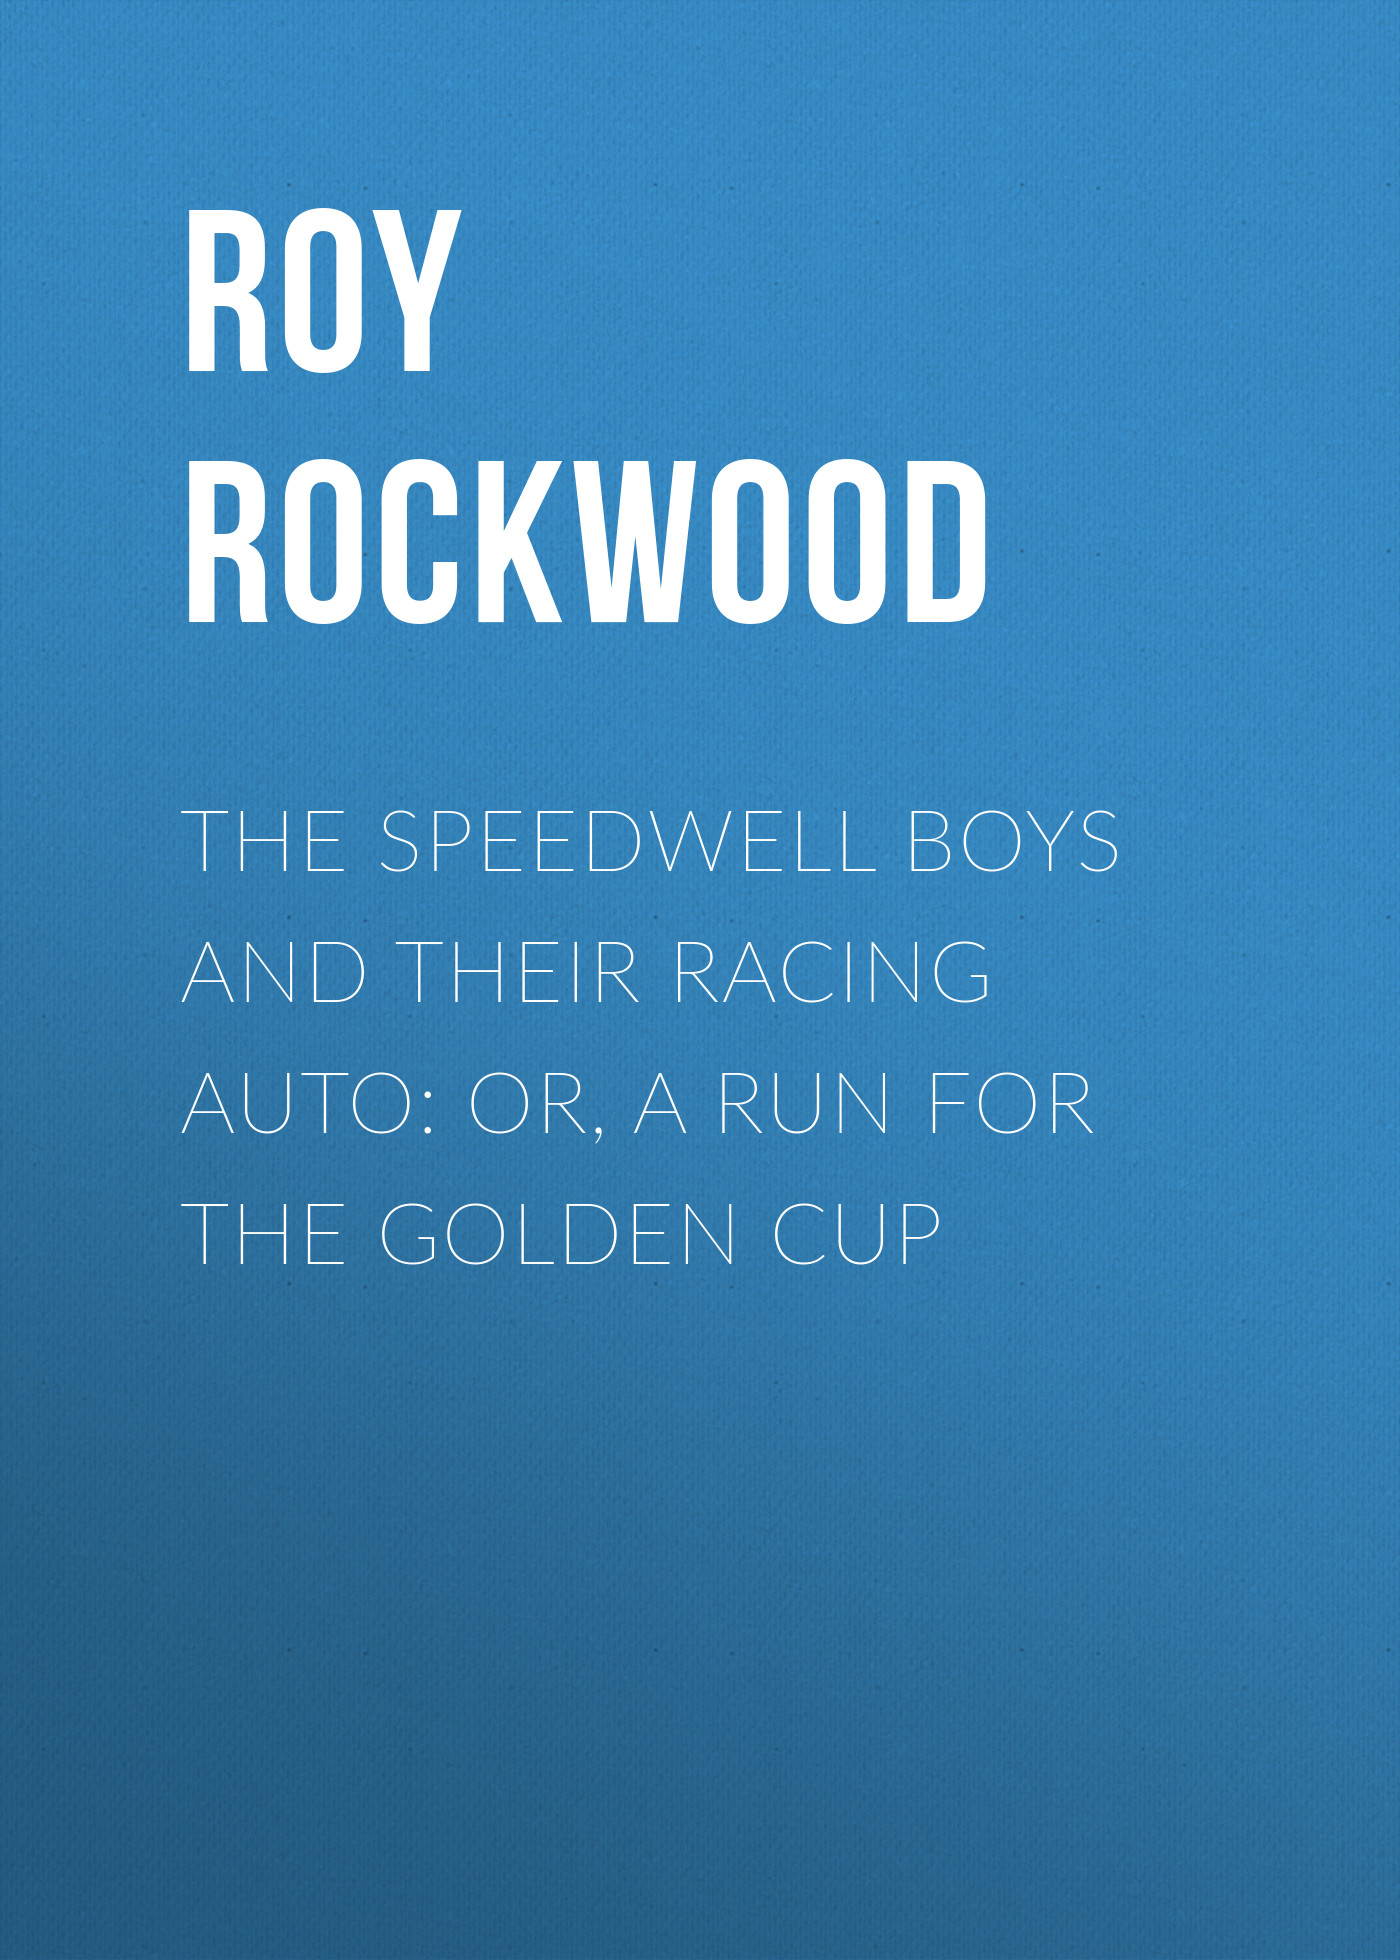 Roy Rockwood The Speedwell Boys and Their Racing Auto: or, A Run for the Golden Cup flip up start ignition switch panel and auto accessories for racing sport dc 12v